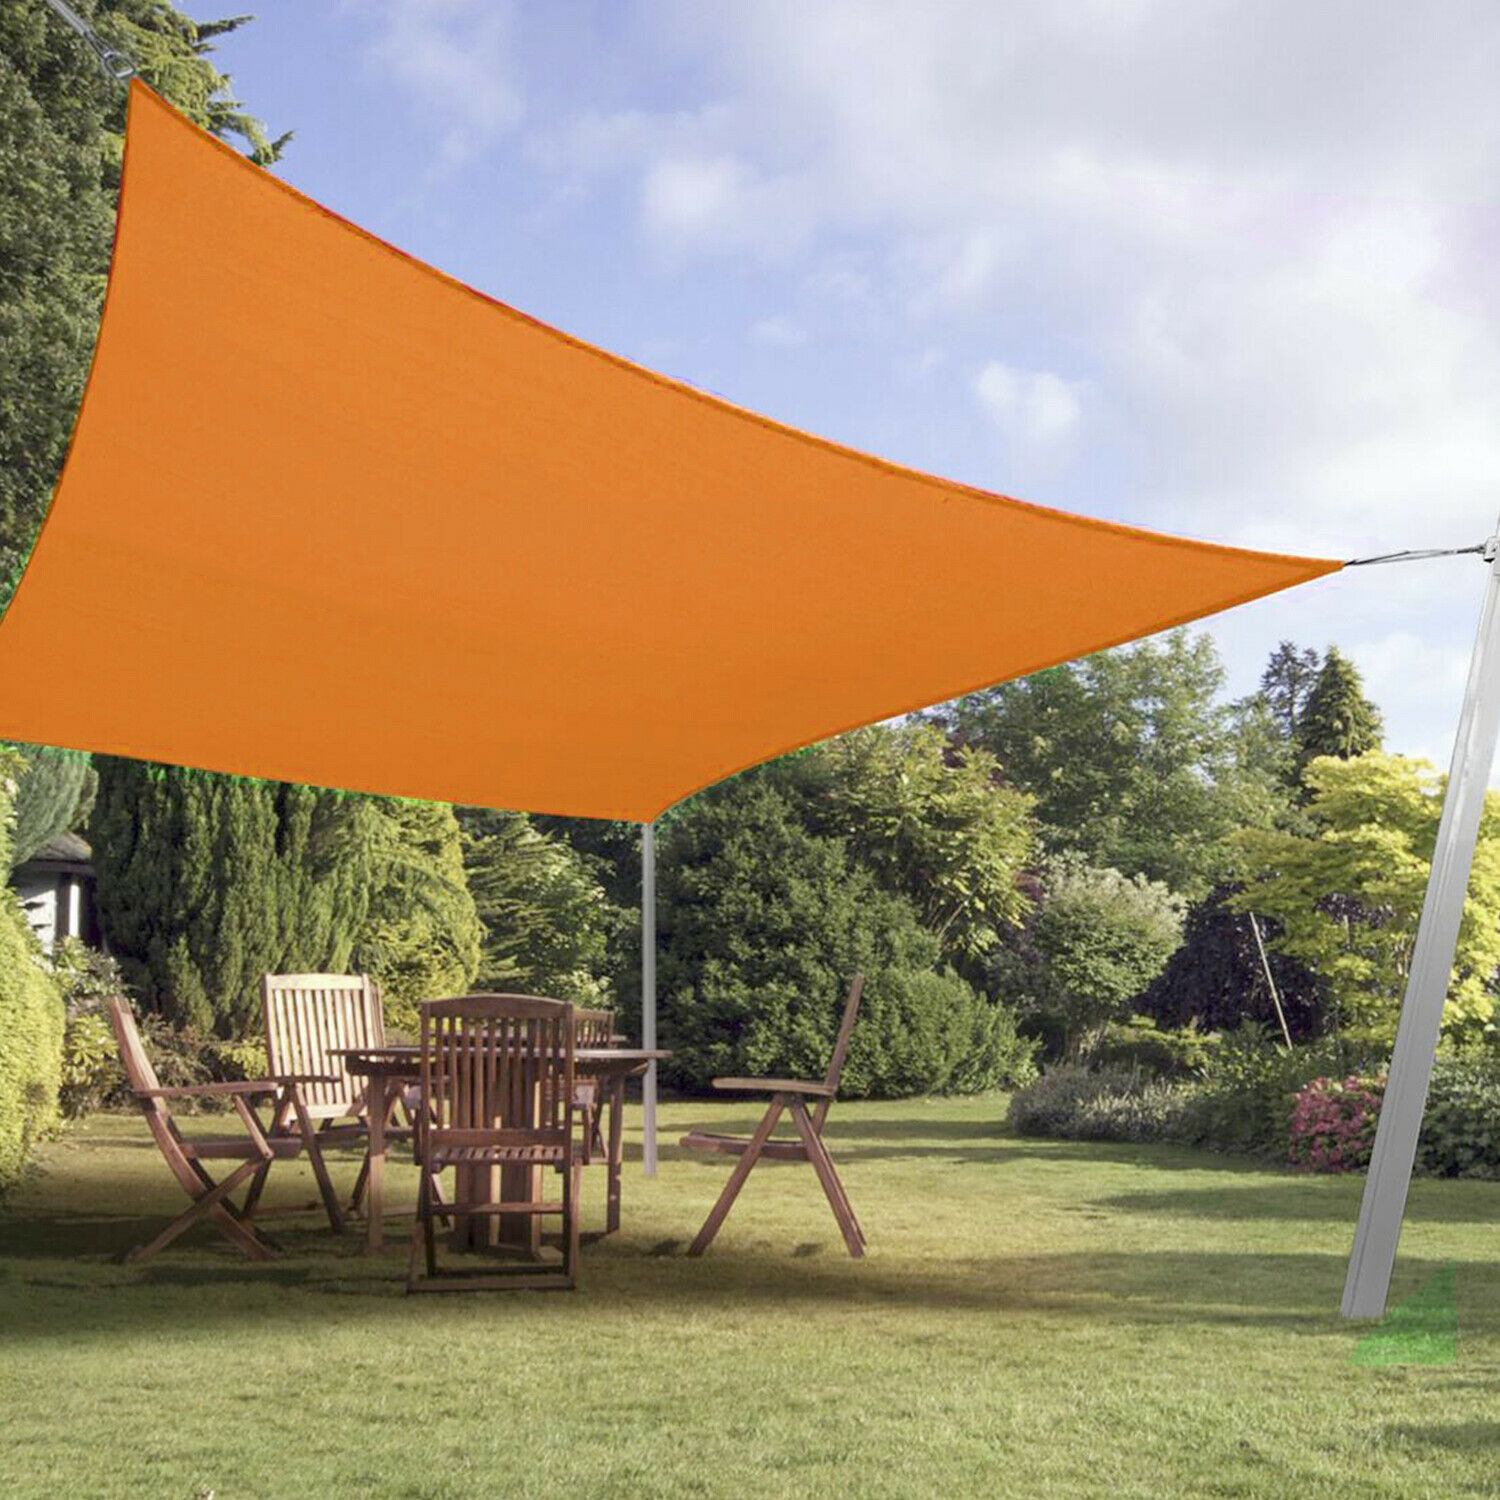 Details About Standard Orange Curve Sun Shade Sail Home Garden Pool Patio  Canopy